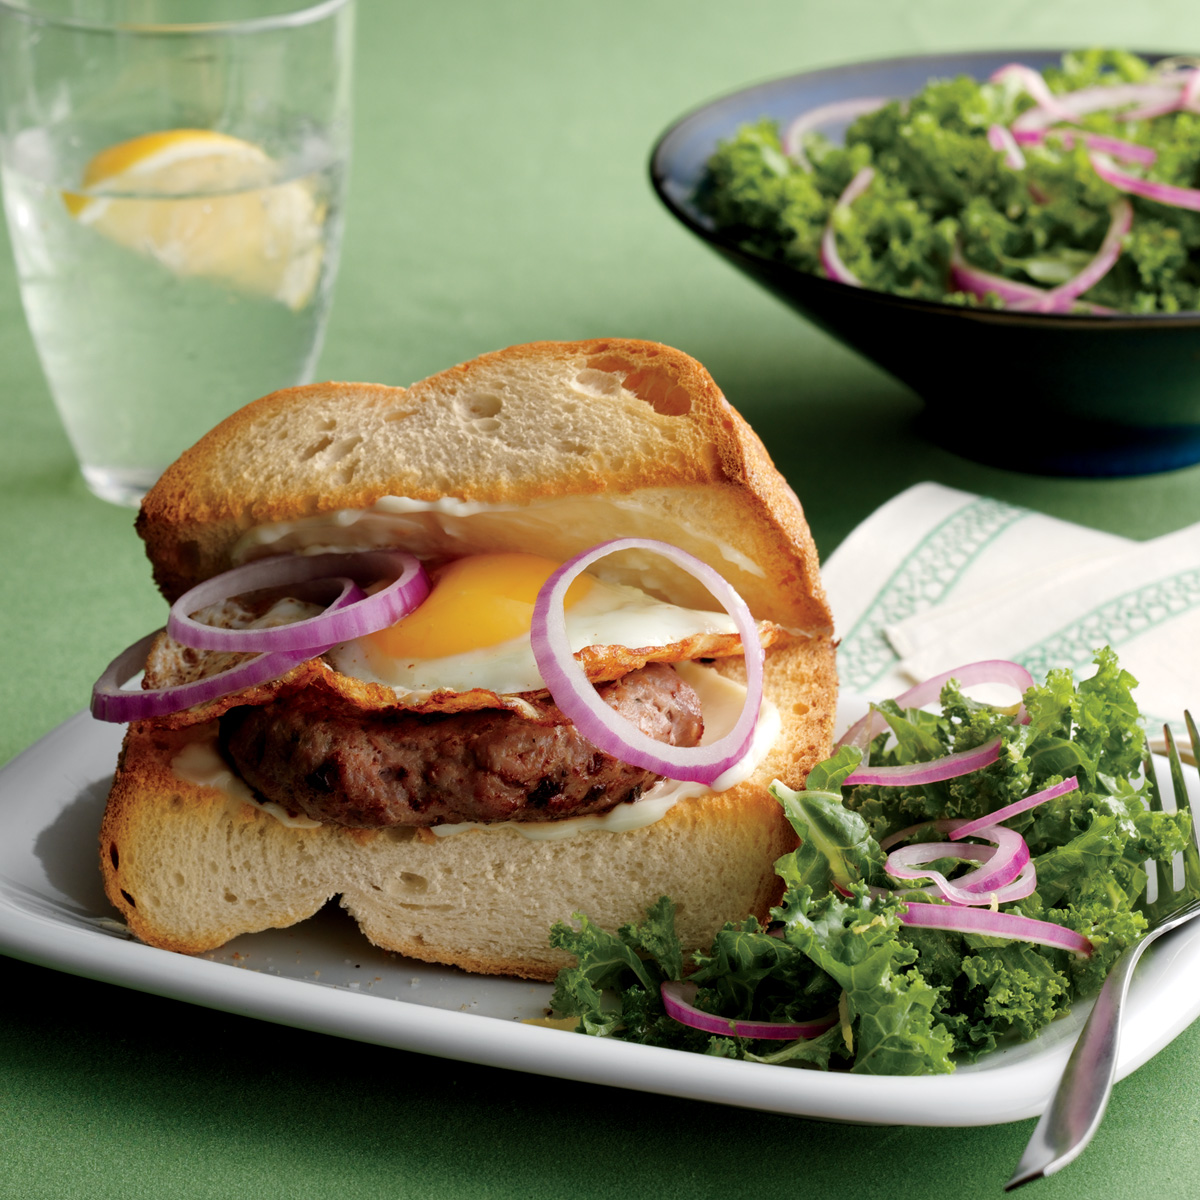 Fried-Egg-Topped Turkey Burgers with Kale Salad